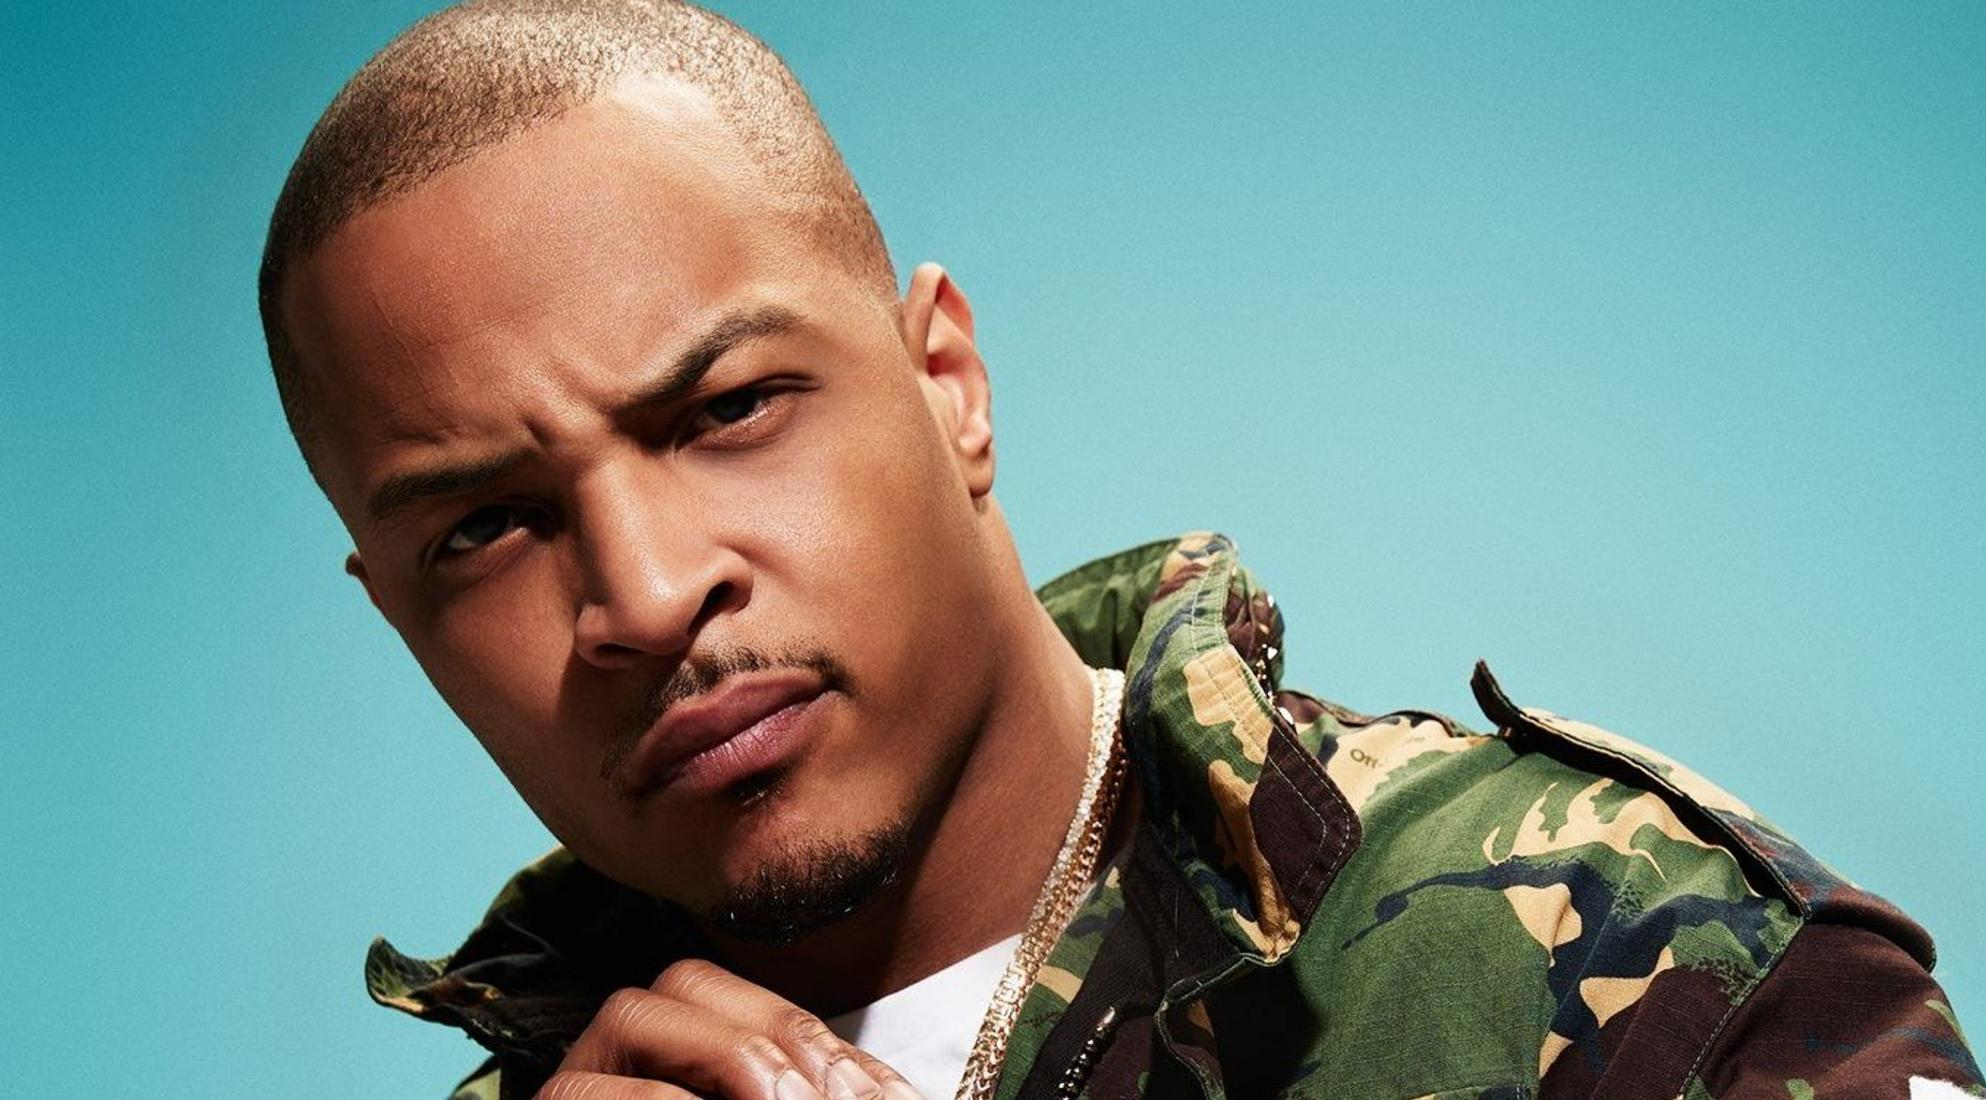 T.I. Also Addresses The Breaking News That Should Have Been All Over The Media